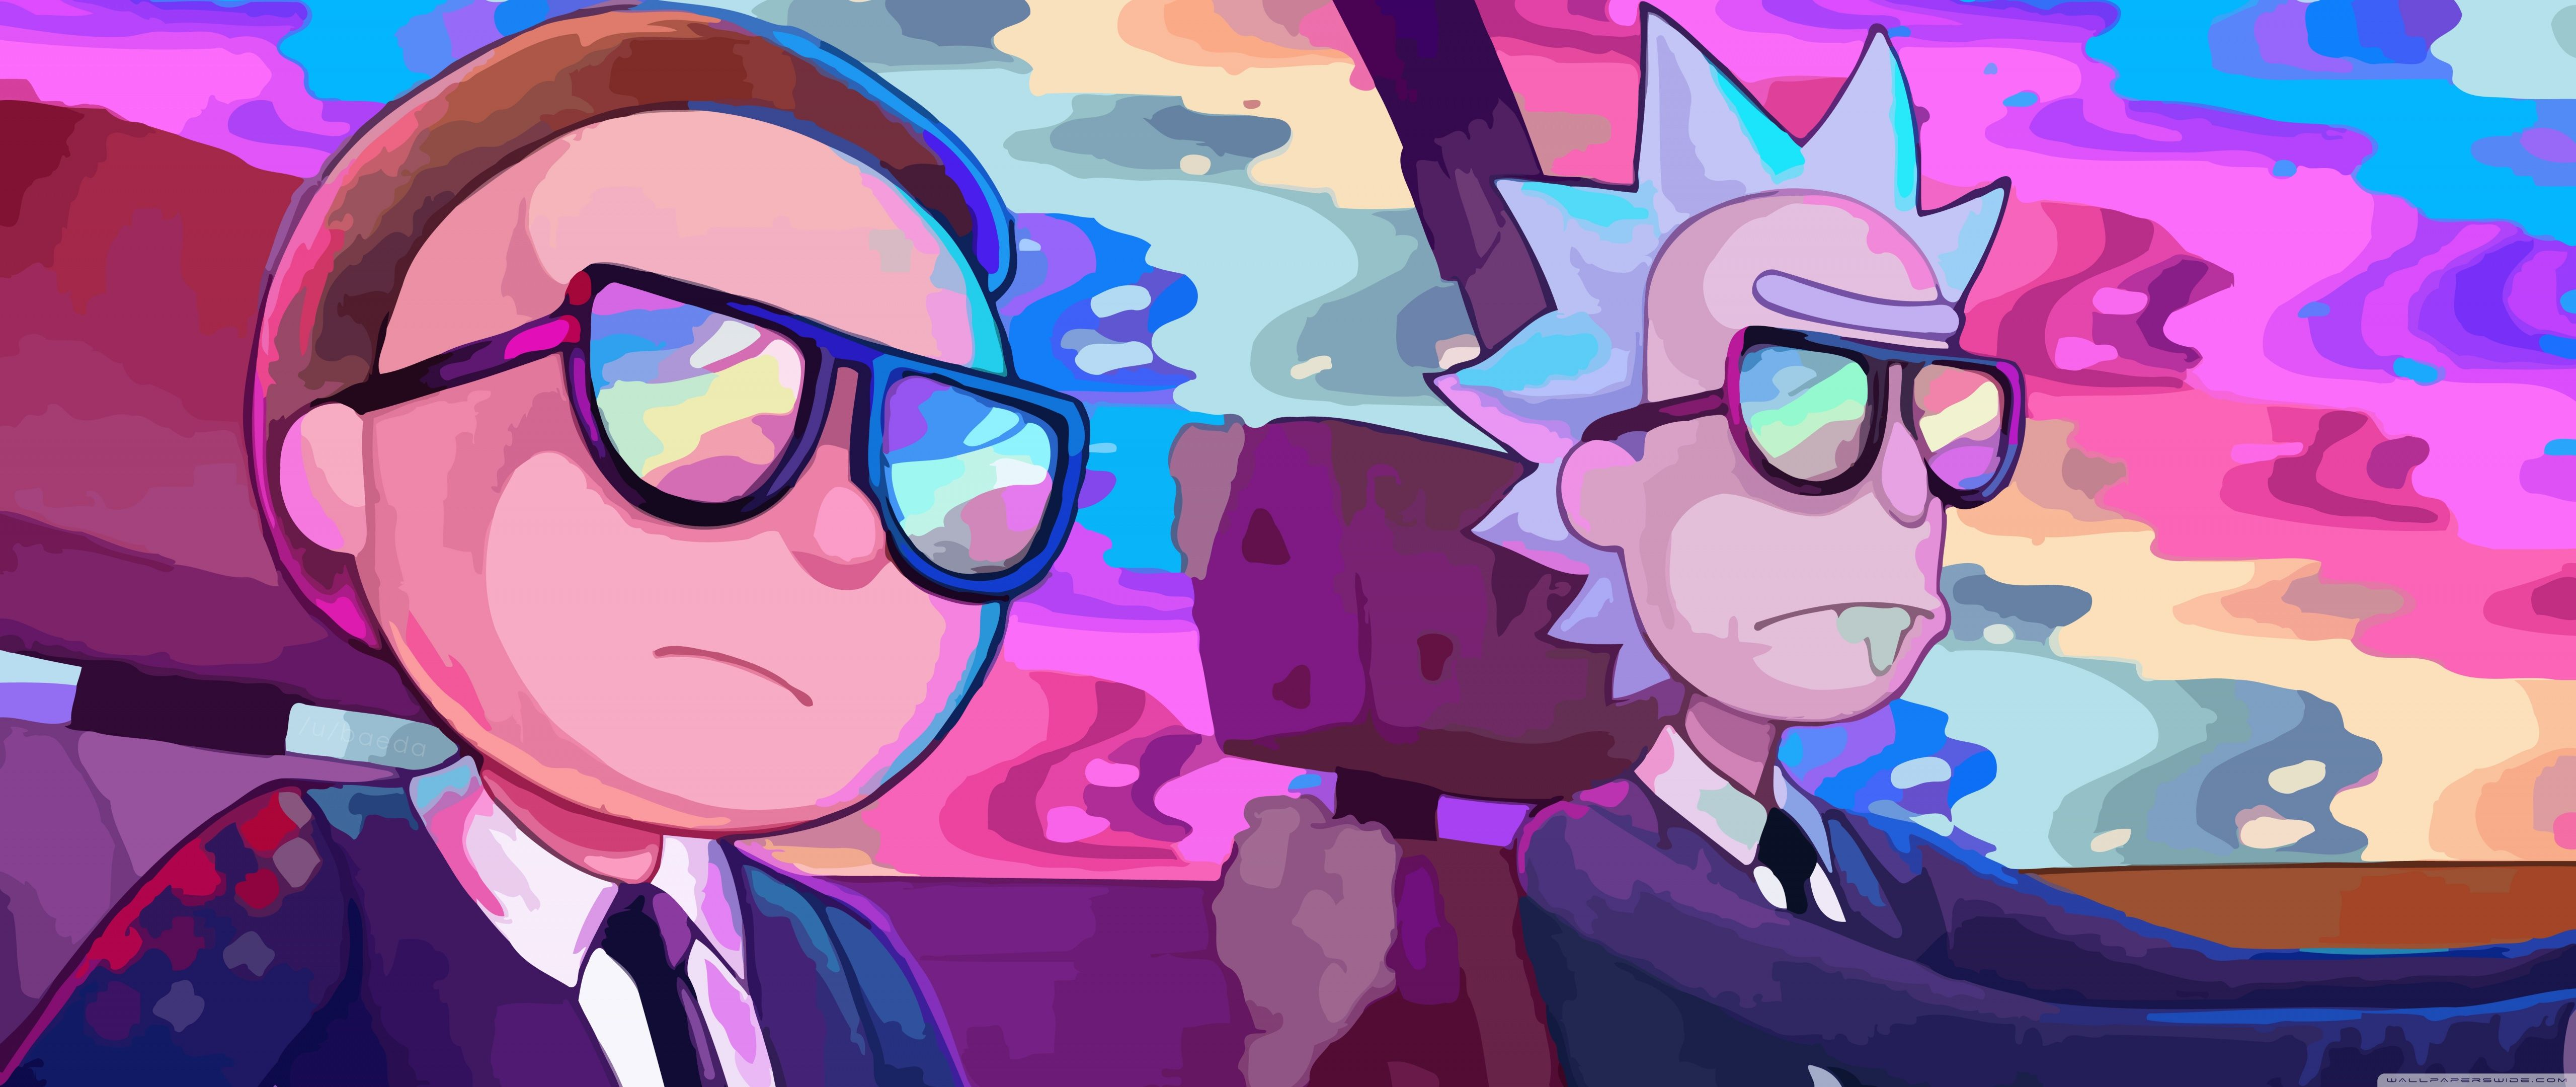 Download Ultrawide Rick And Morty Rainbow And Search More Hd Desktop And Mobile Wallpapers On Itl Cat Vektor